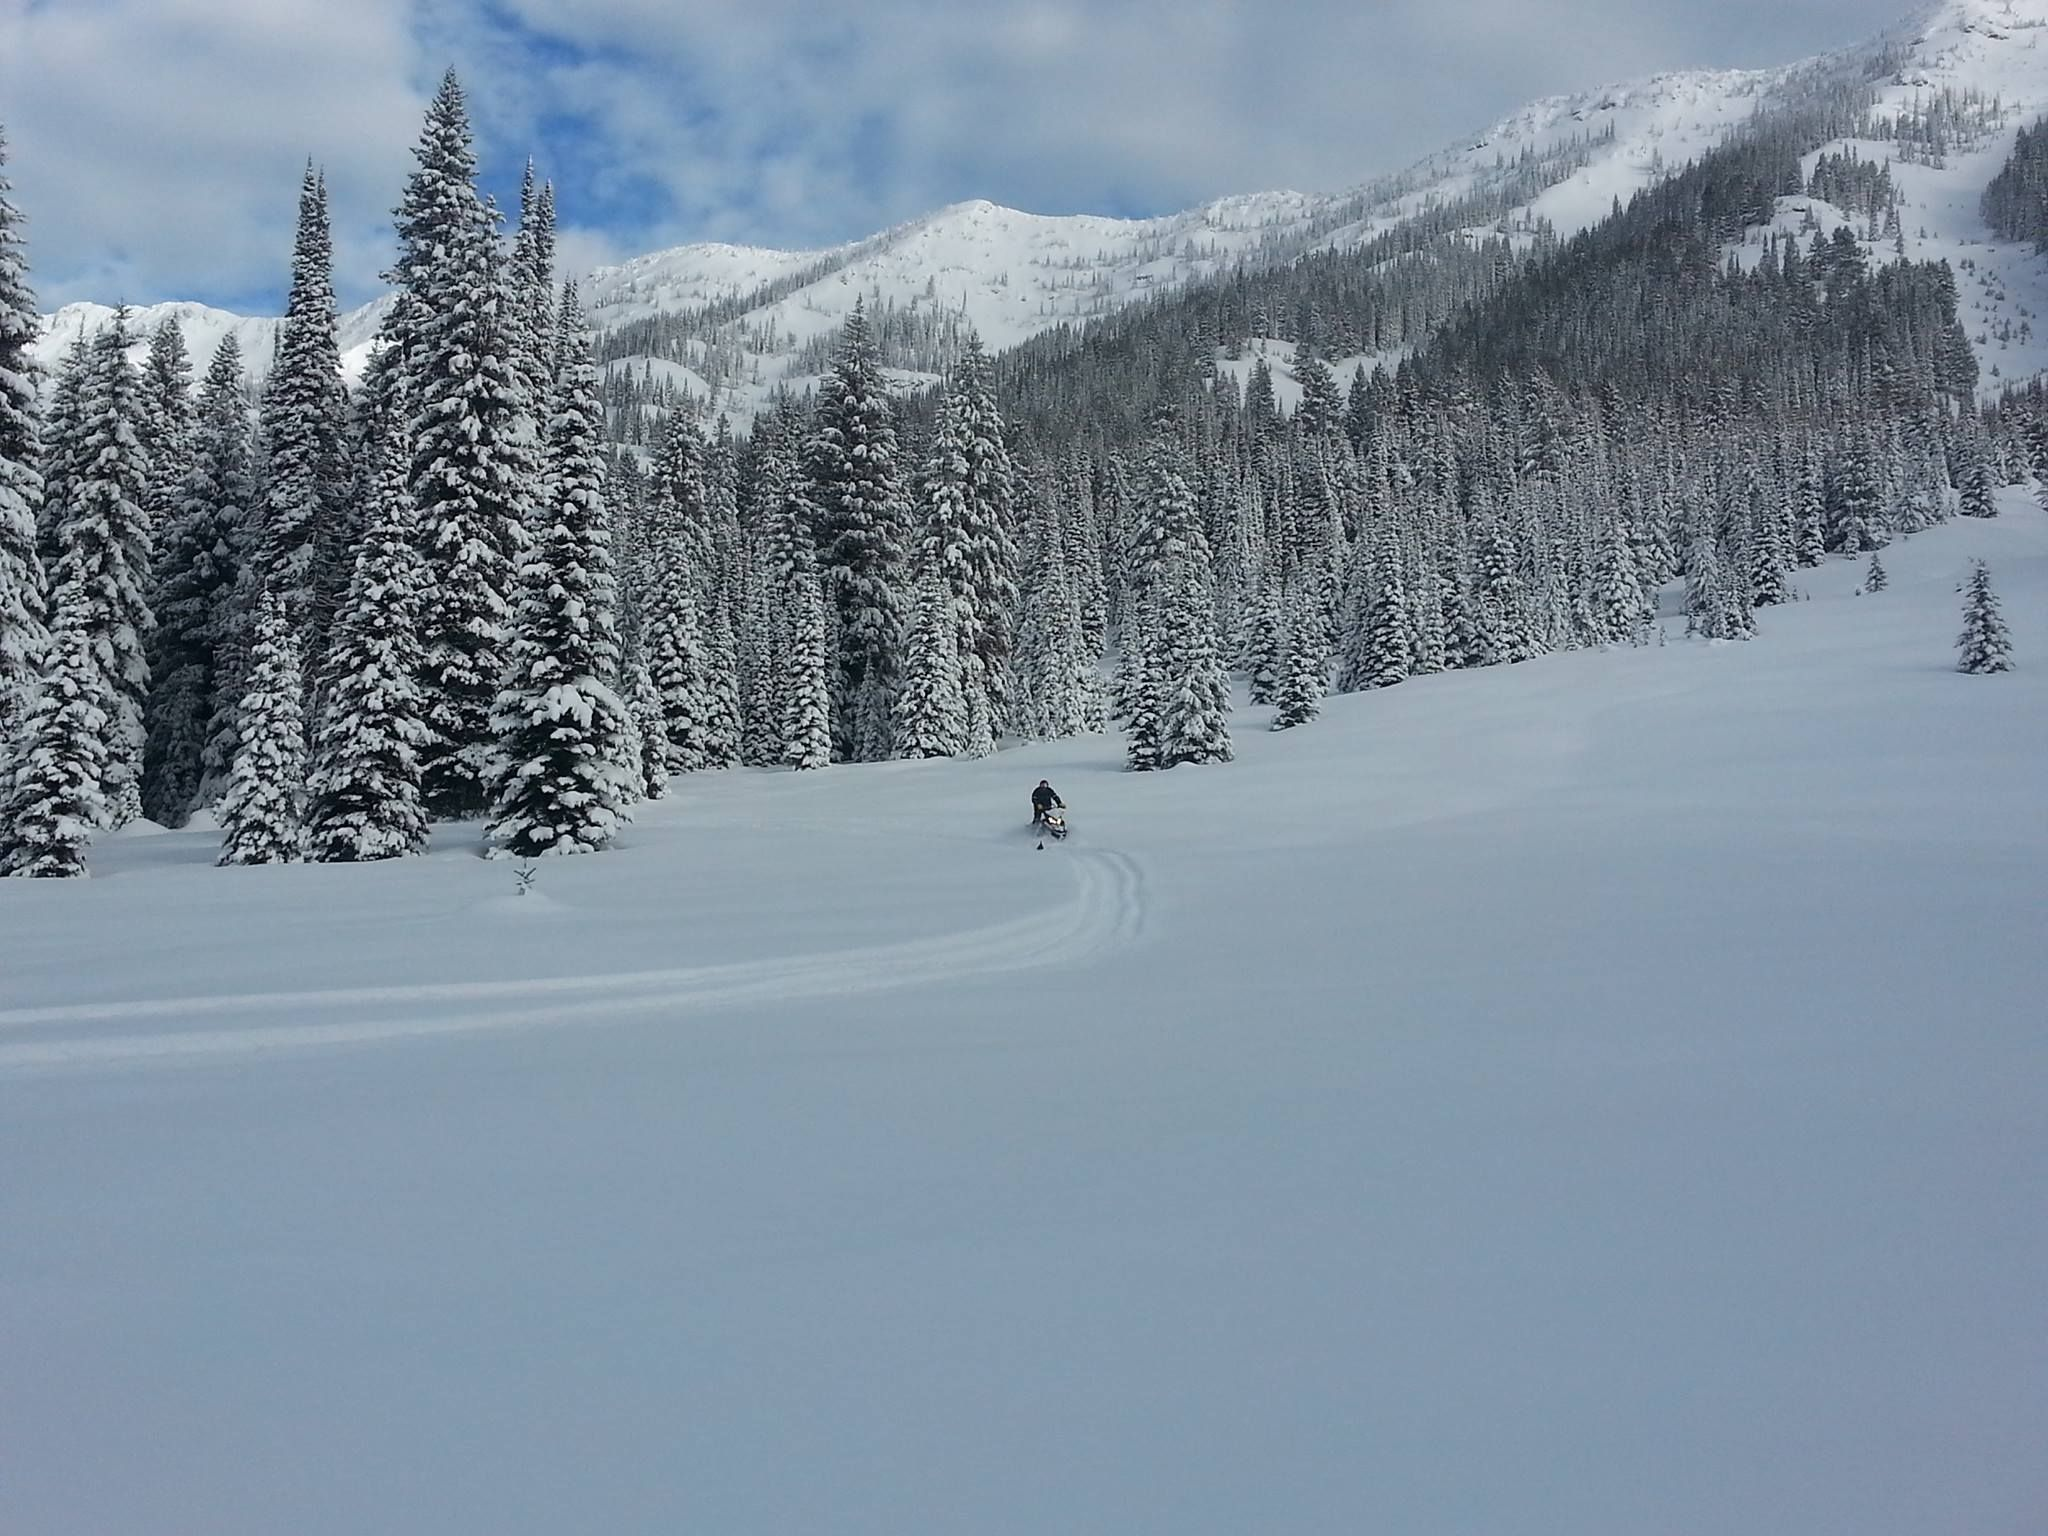 Best snowmobiling trails near me seeley lake